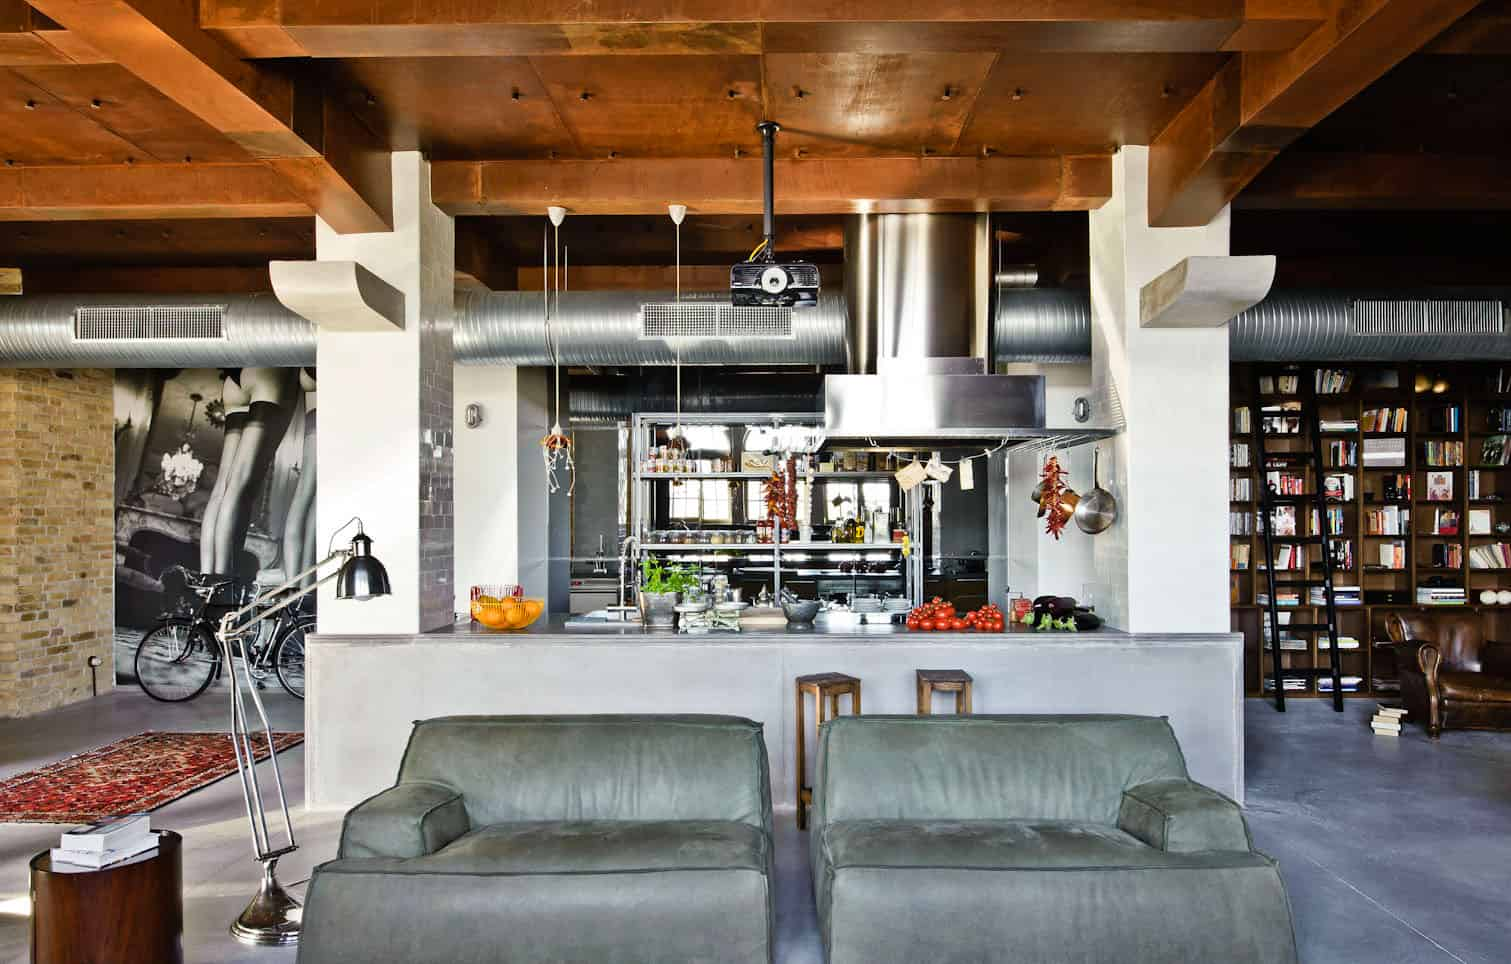 unthinkable how to furnish a loft. Eclectic Loft Apartment In Budapest By Shay Sabag Ways To Decorate A  Home Desain 2018